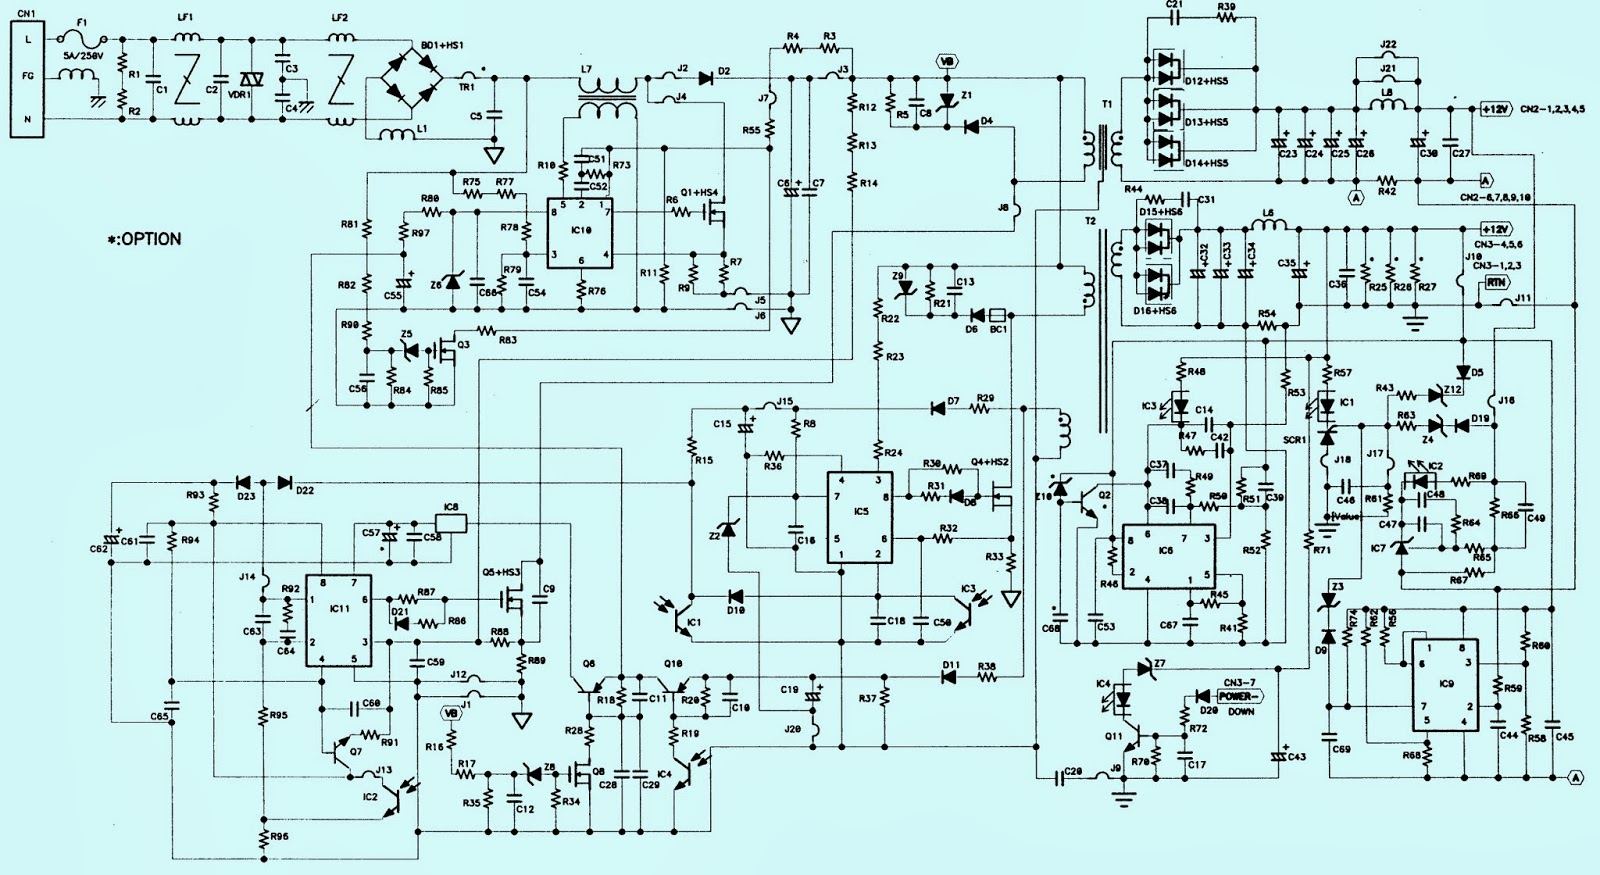 untitled.bmp toshiba 27wl46 power supply [smps] schematic (circuit diagram toshiba motor wiring diagram at bayanpartner.co